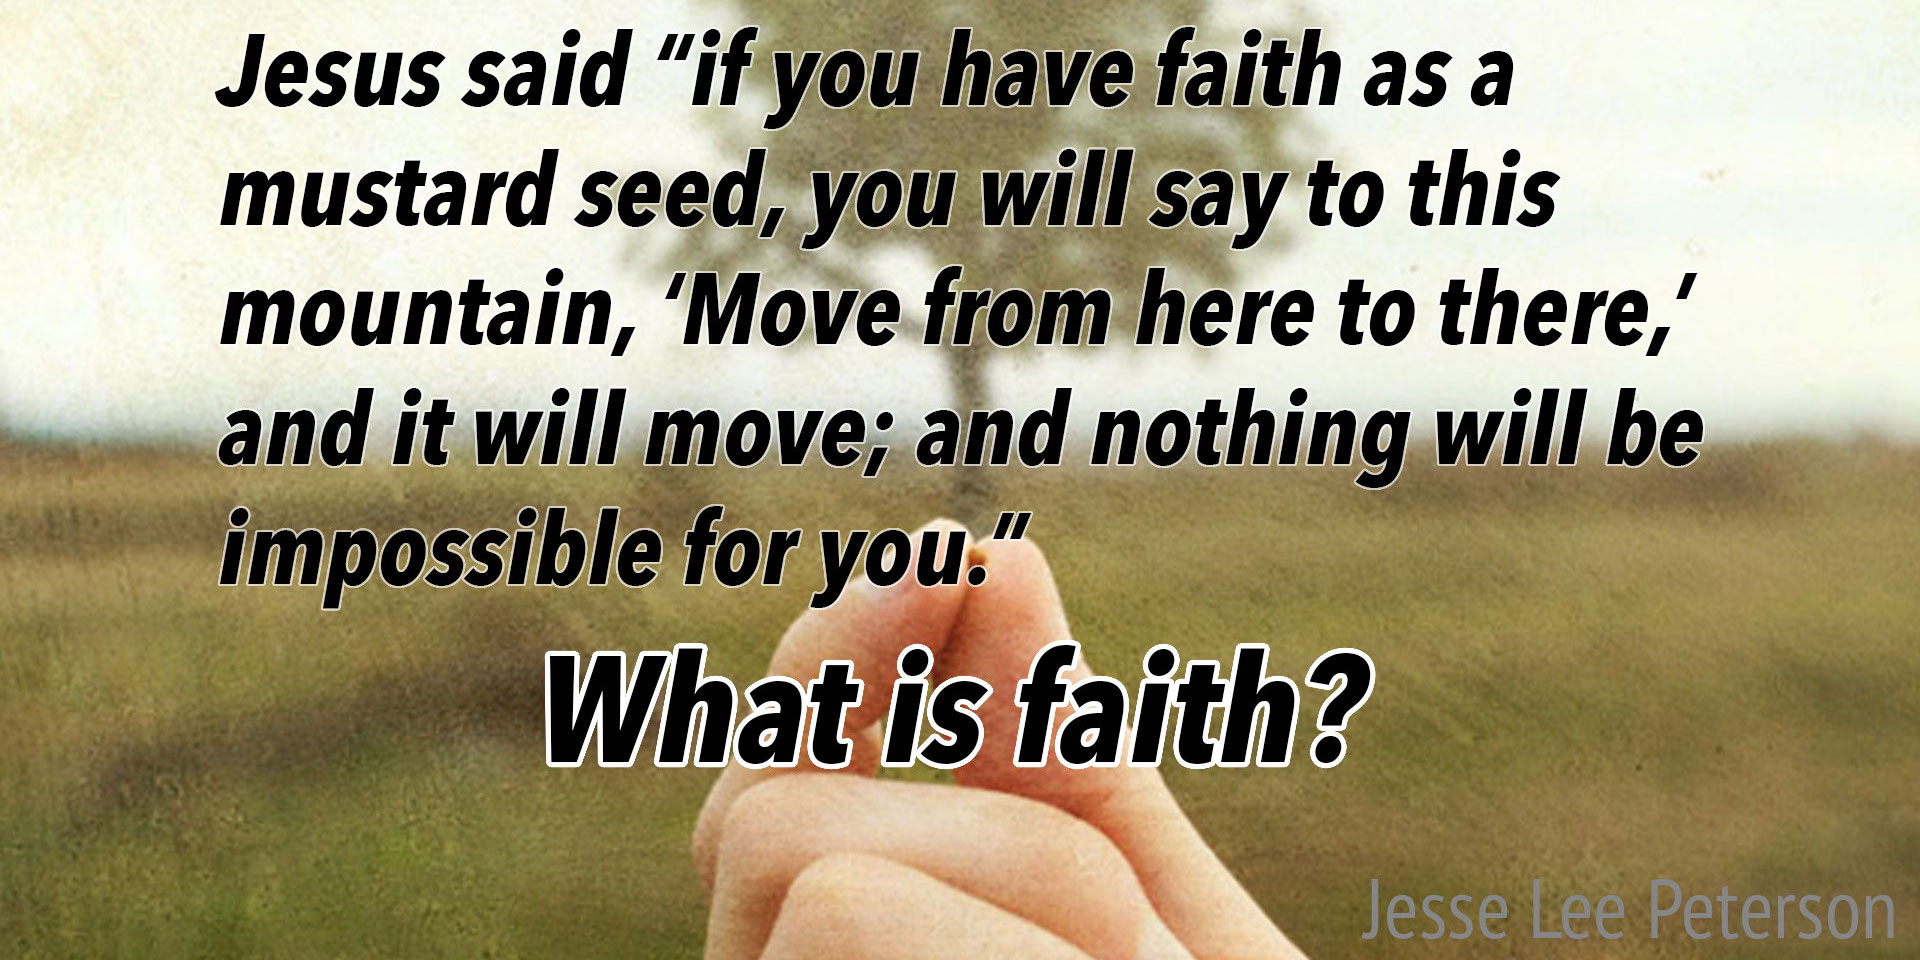 Biblical Question: What is Faith?